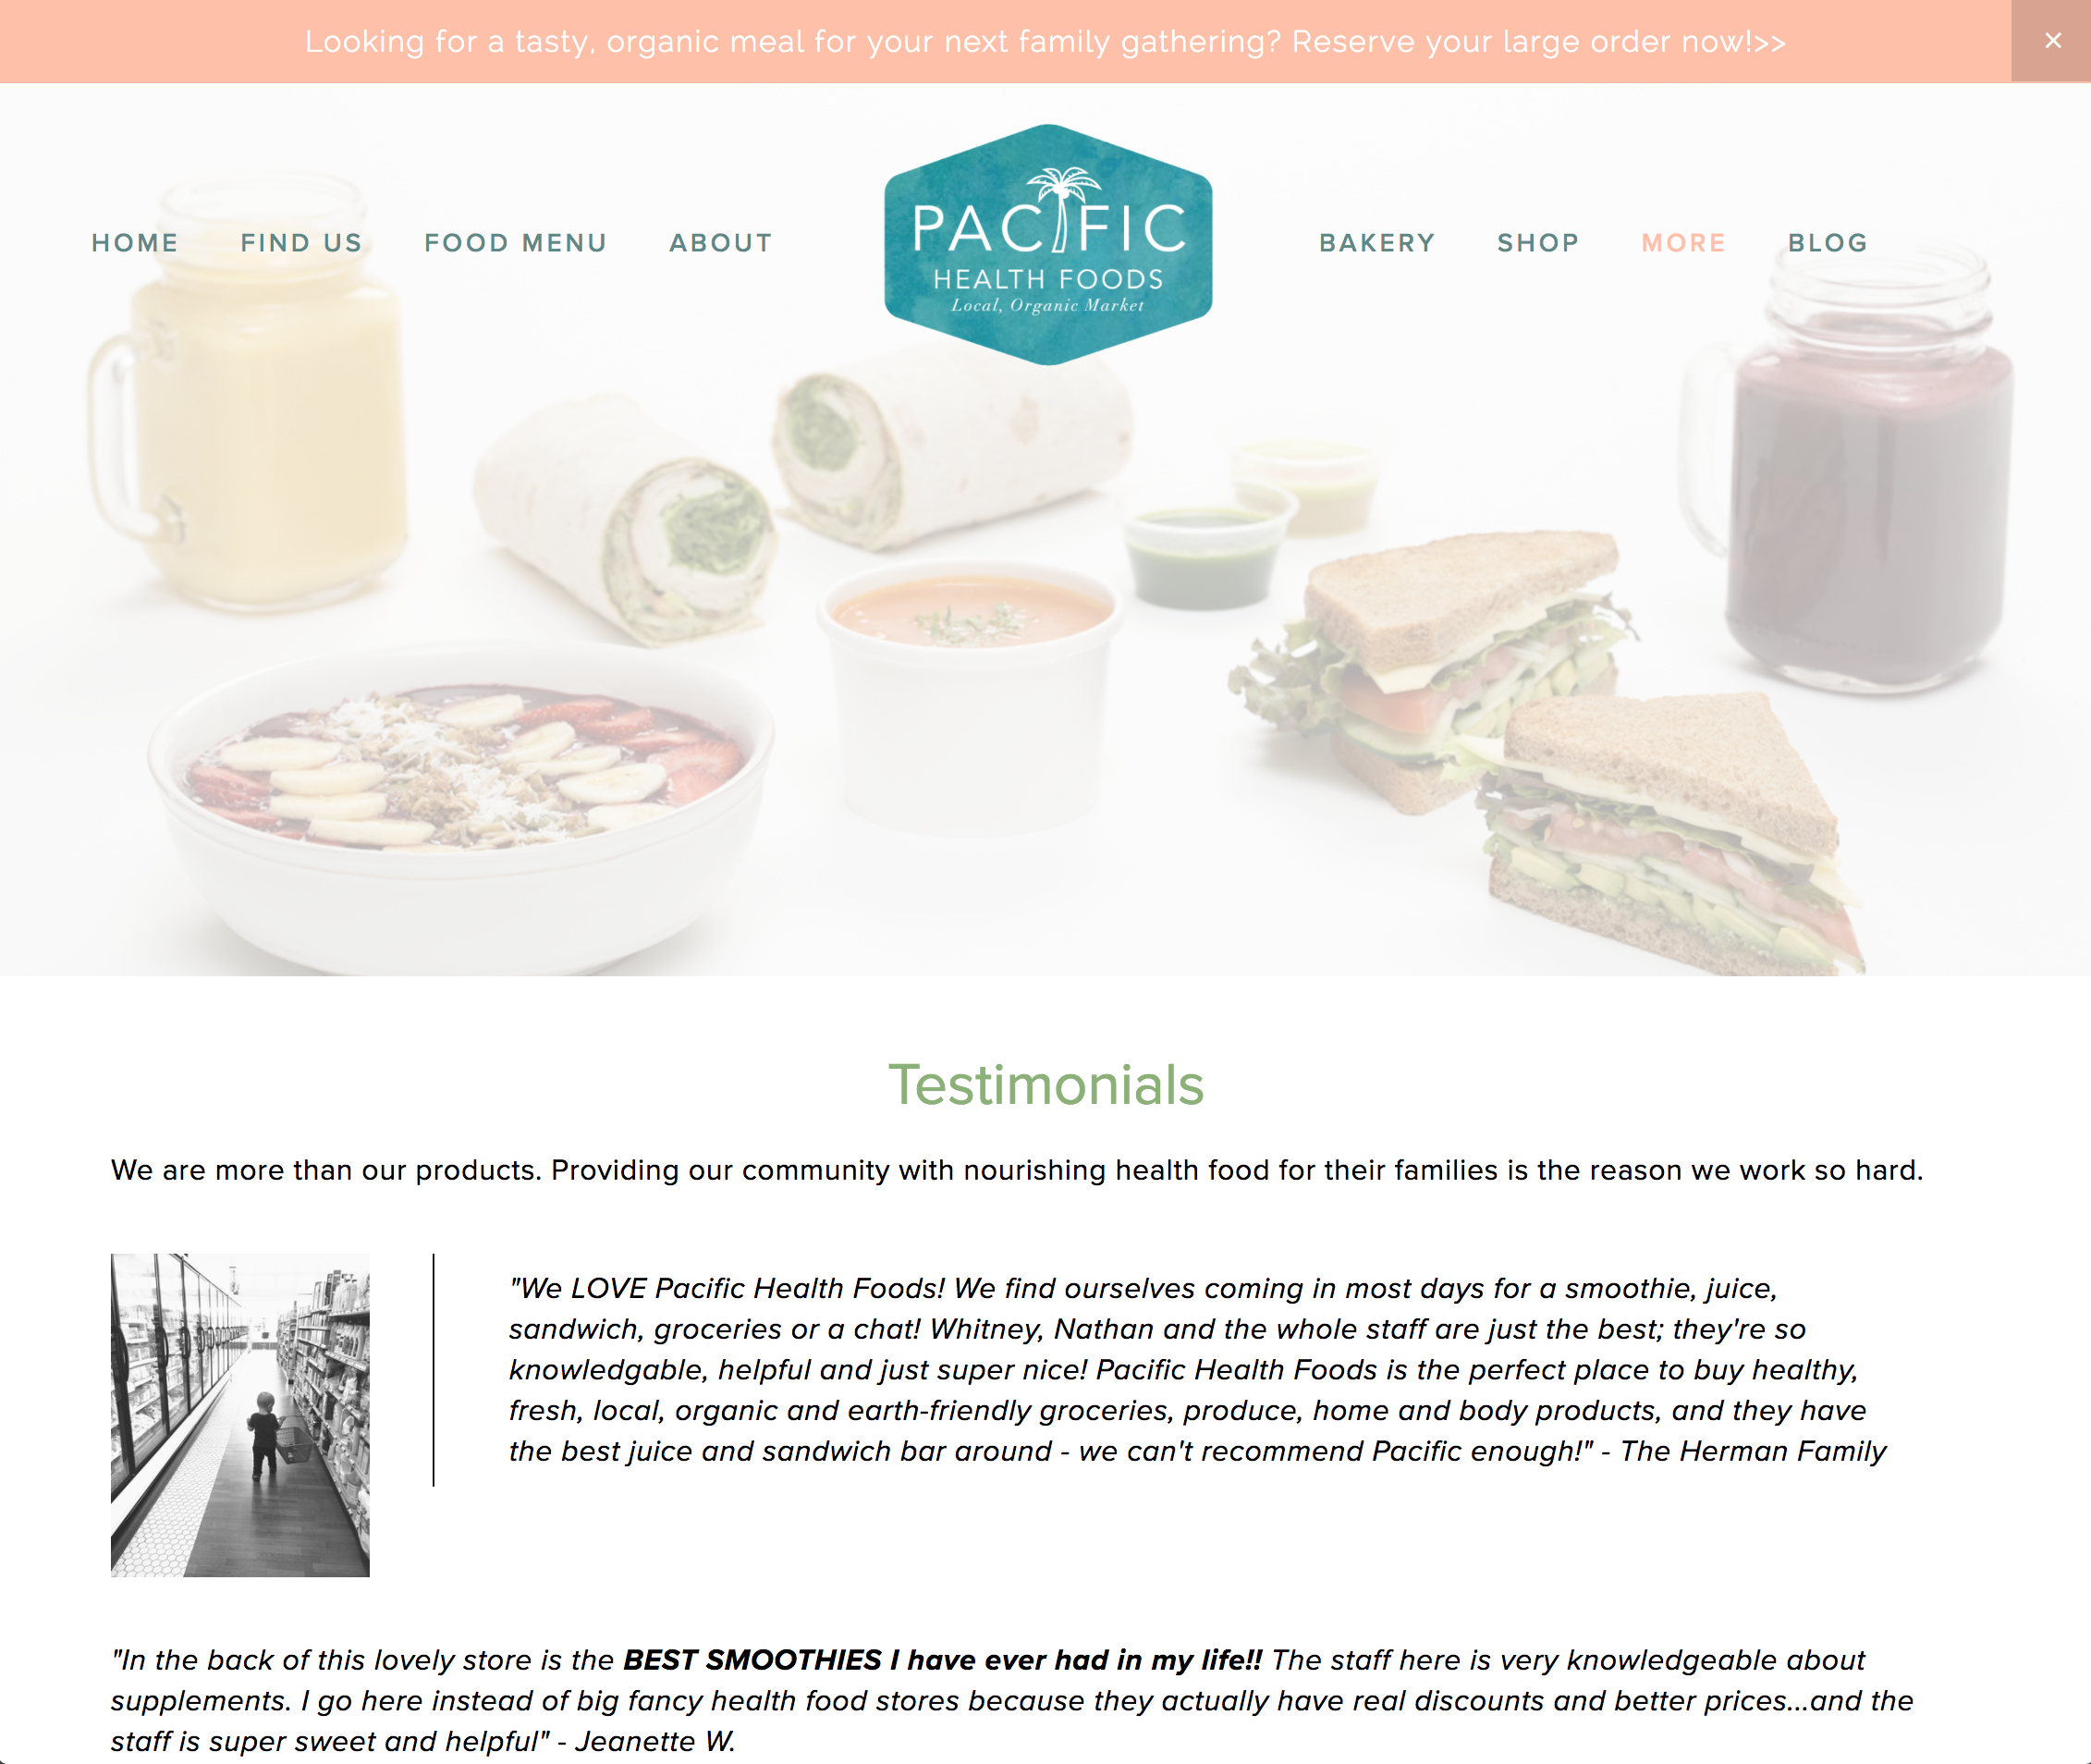 Example of a page devoted to testimonials